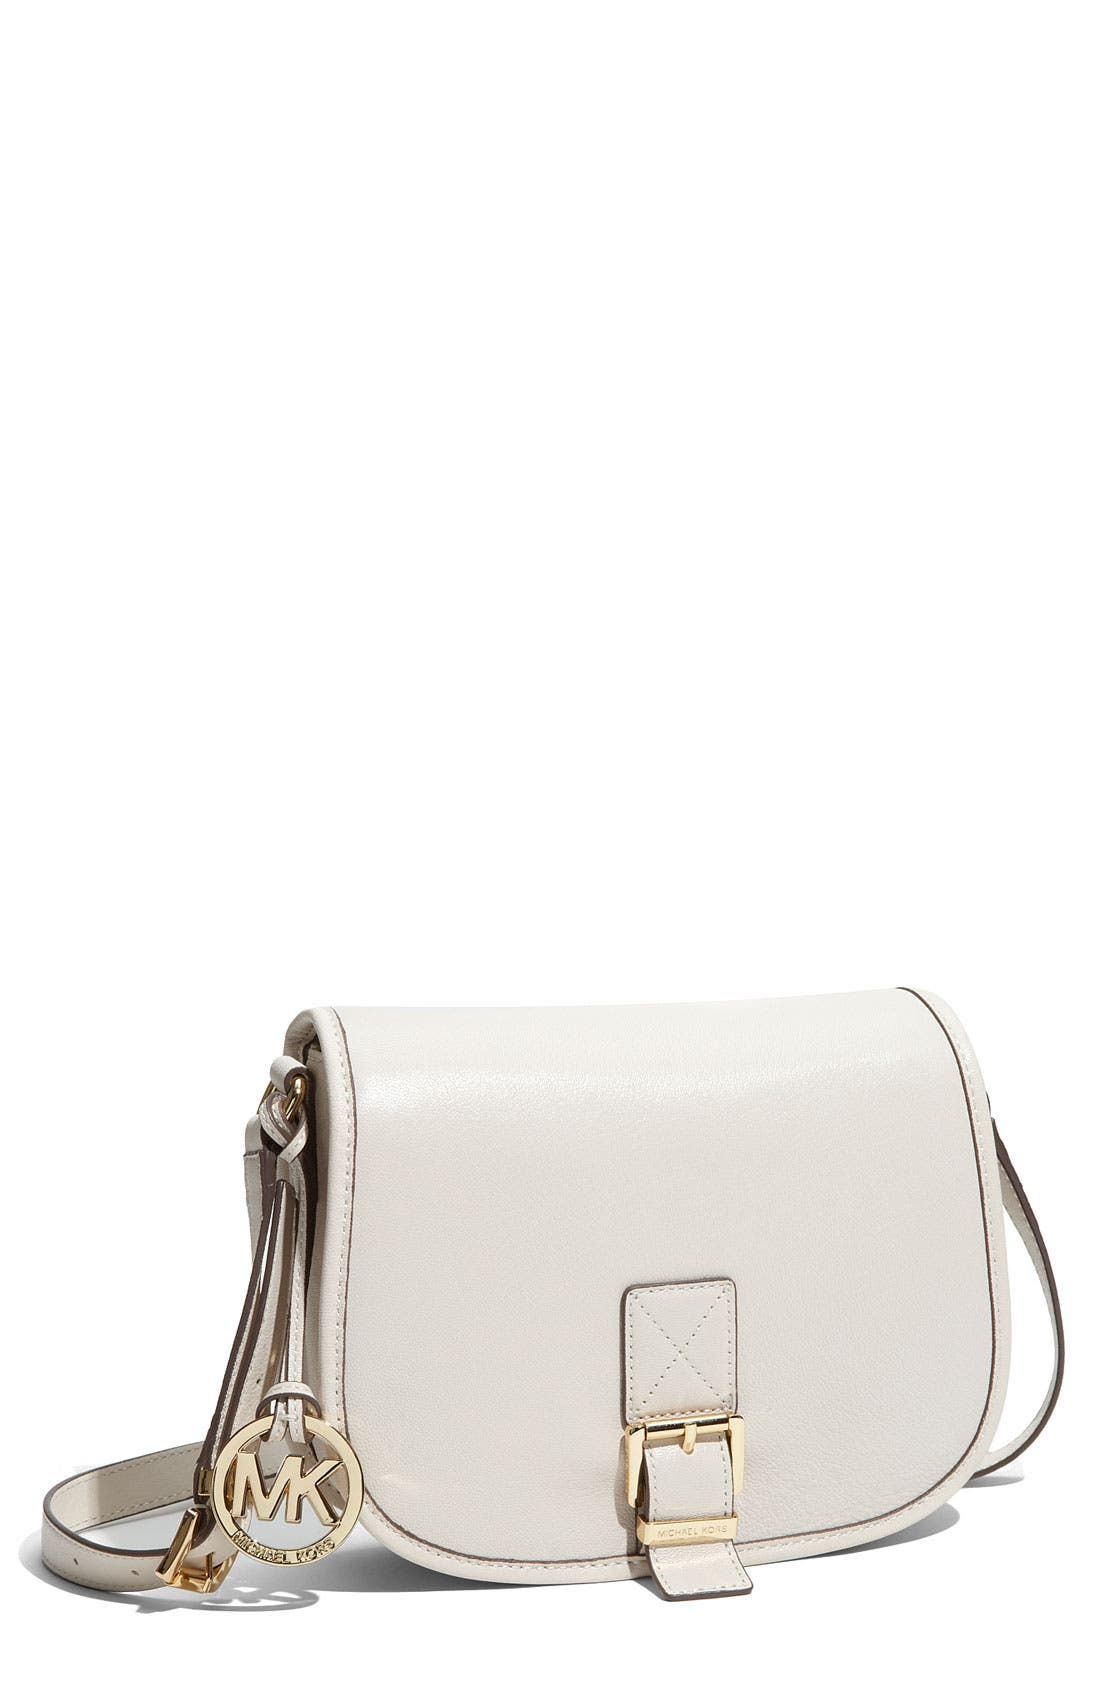 Alternate Image 1 Selected - MICHAEL Michael Kors 'Medium' Messenger Saddle Bag